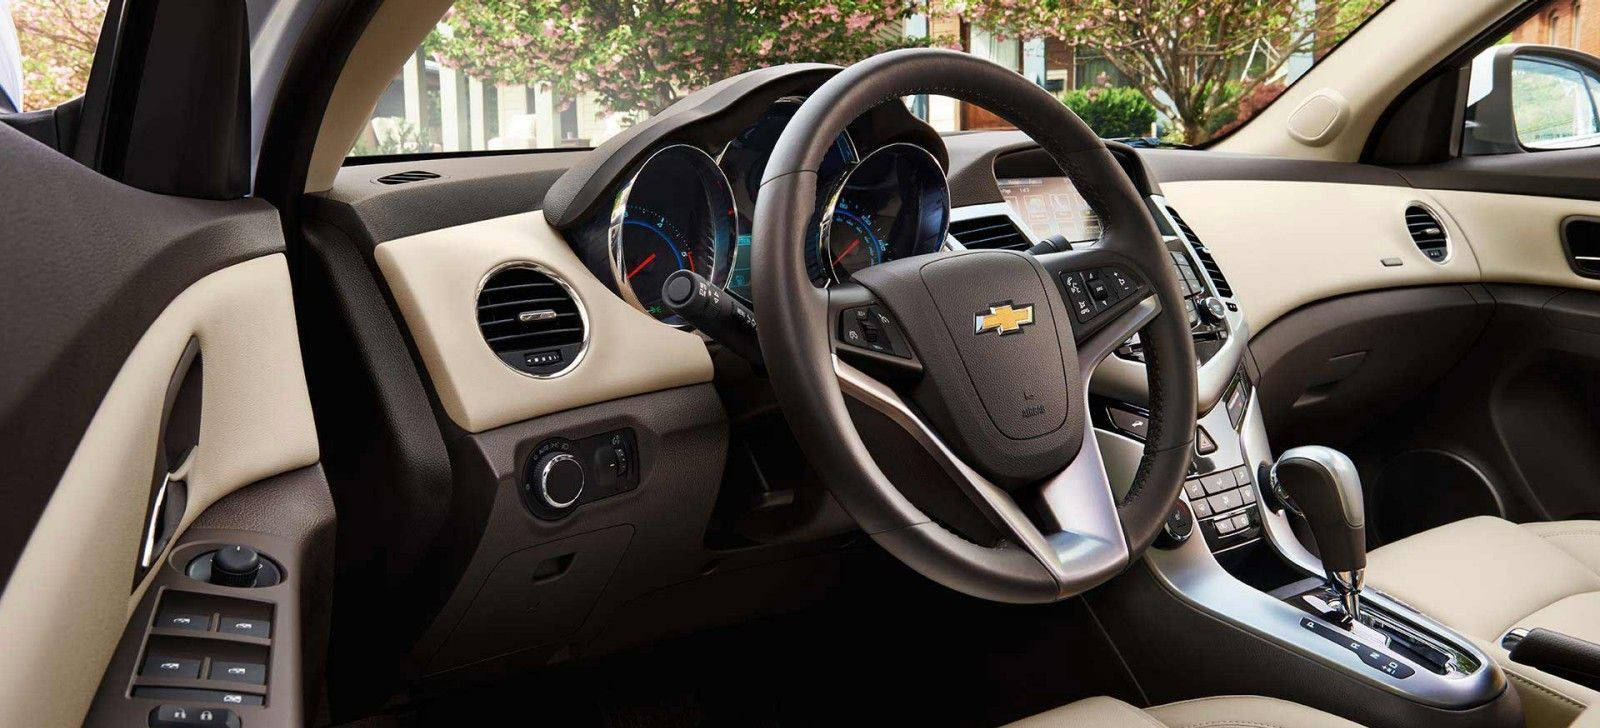 2016 Chevy Cruze Limited Interior